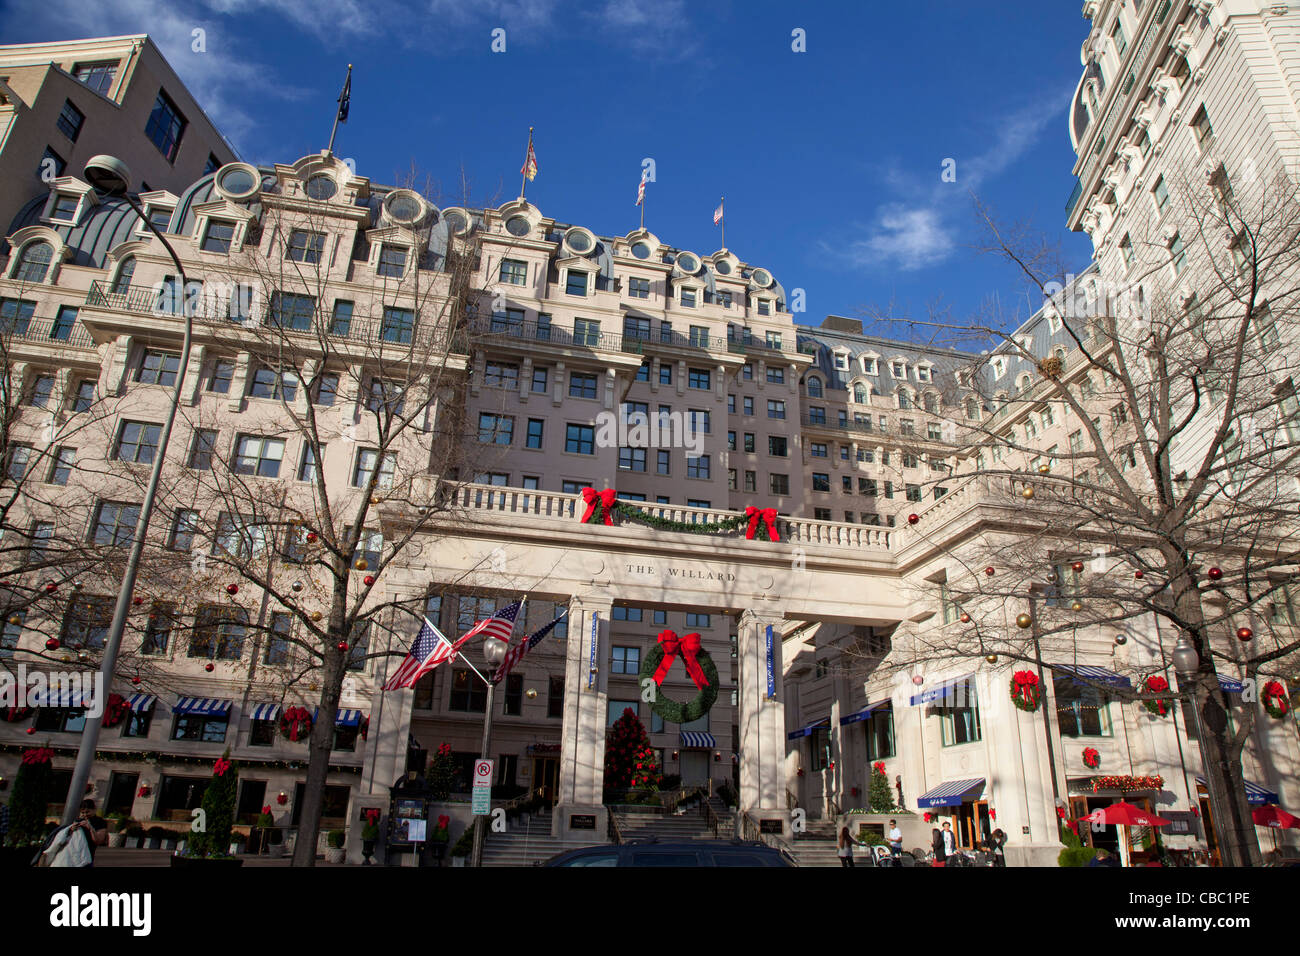 Washington, DC - The Willard InterContinental Hotel, a luxury hotel around the corner from the White House. - Stock Image